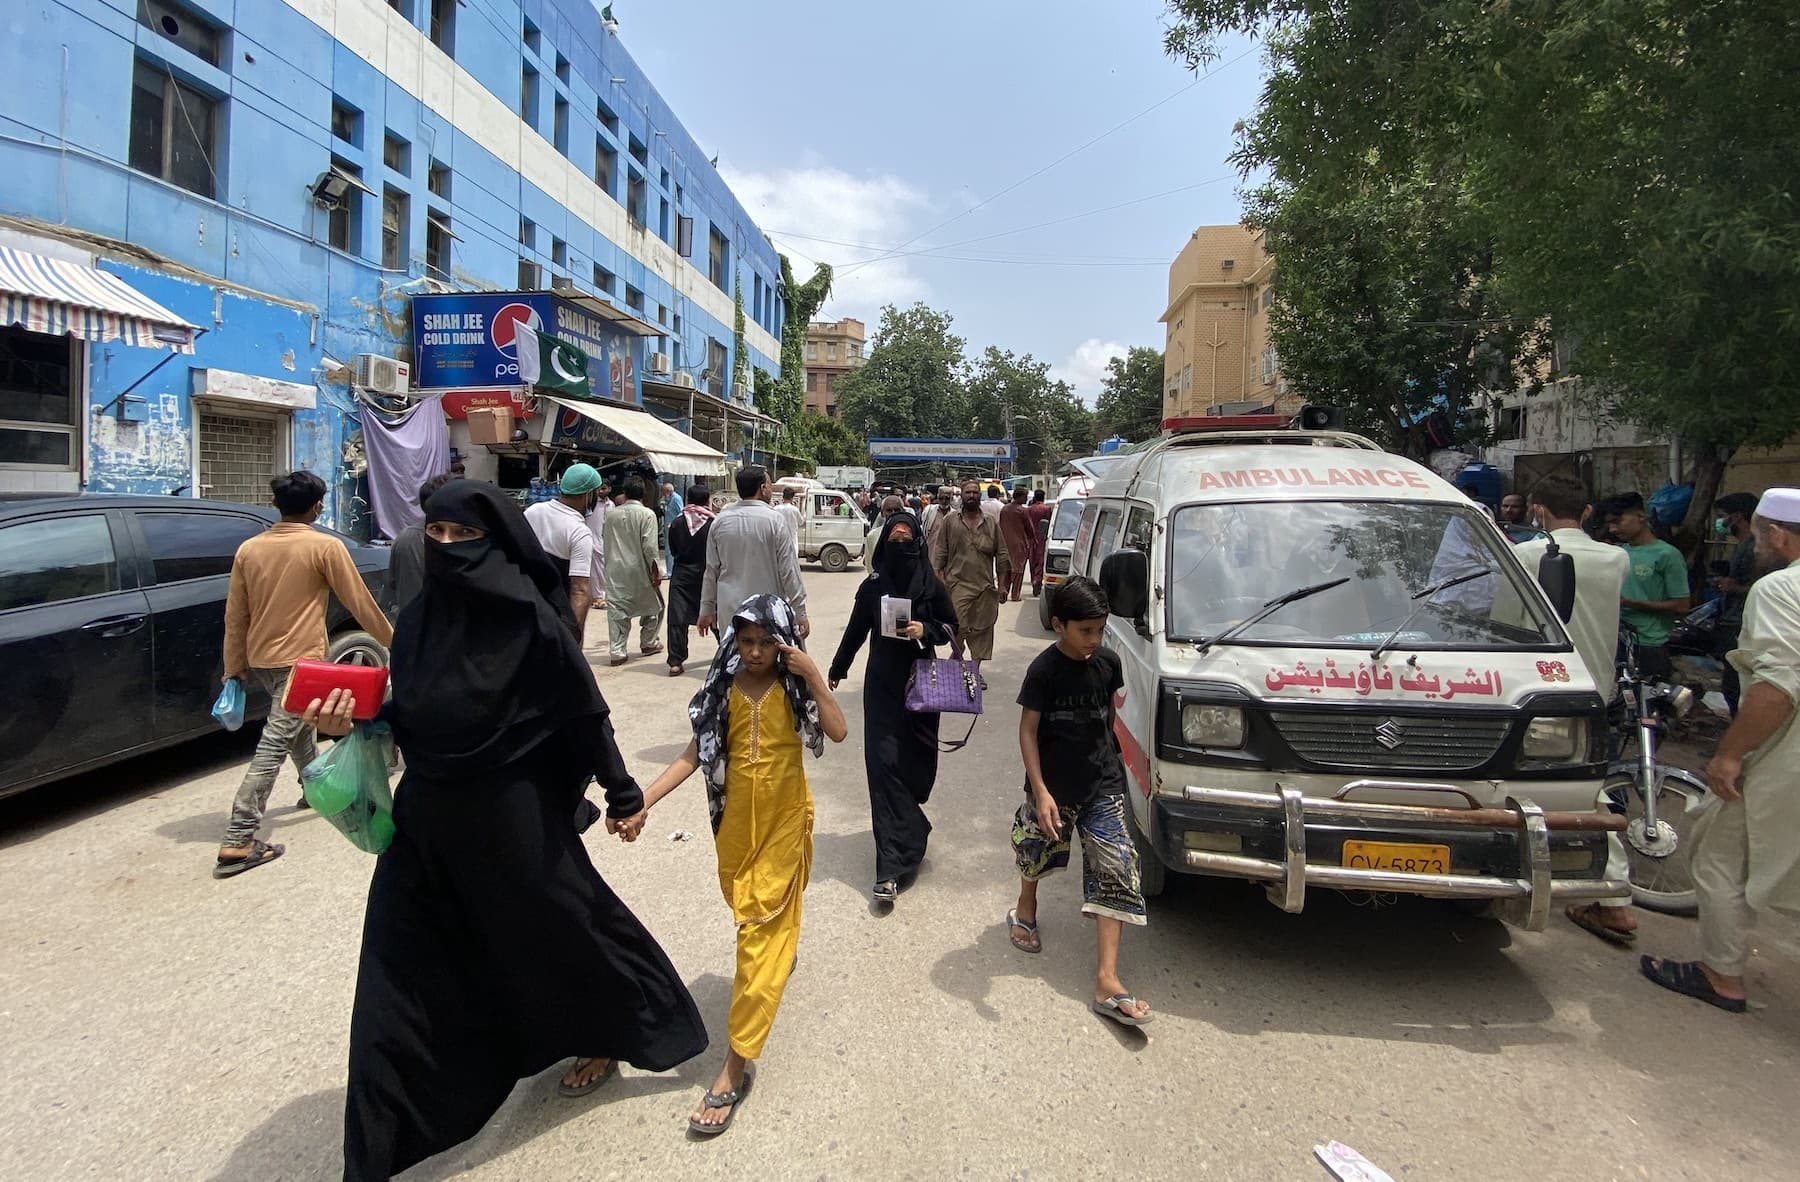 Patients and attendants inside the Dr Ruth Pfau Civil Hospital. Medical staff complains that the area around the Dr Ruth Pfau Hospital is very congested and overcrowded. — Photo by Rabia Bugti